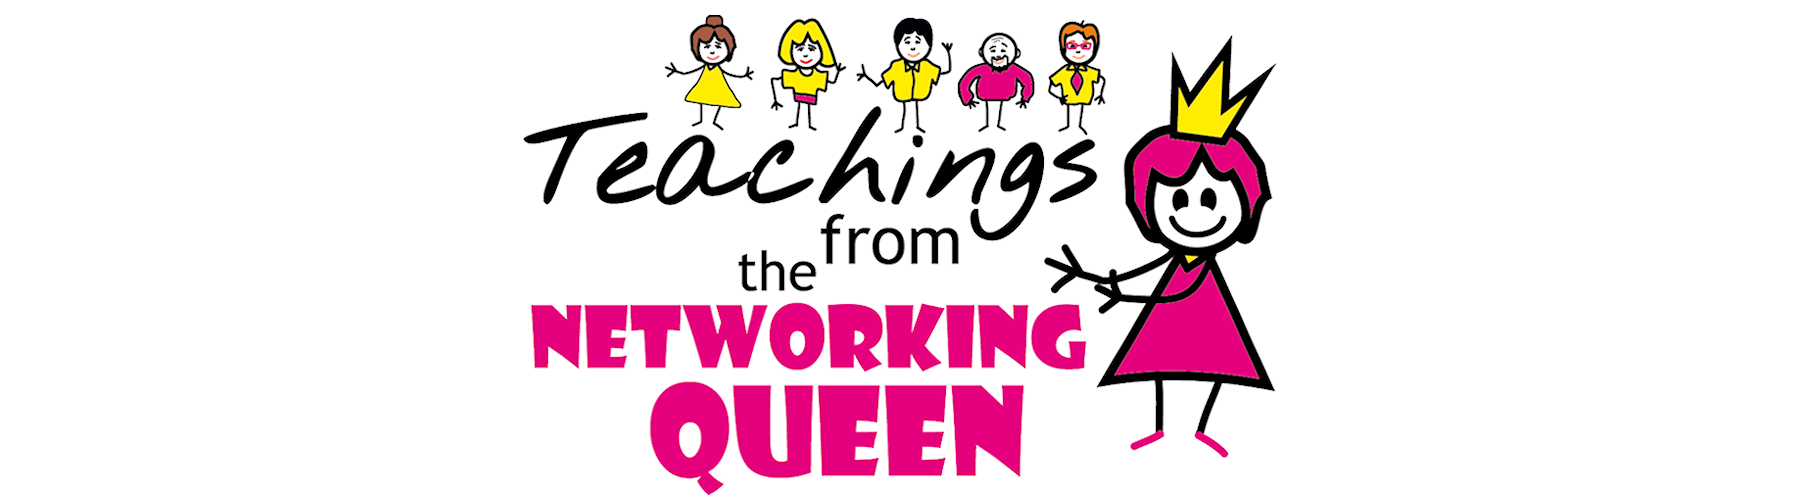 Teachings from the Networking Queen